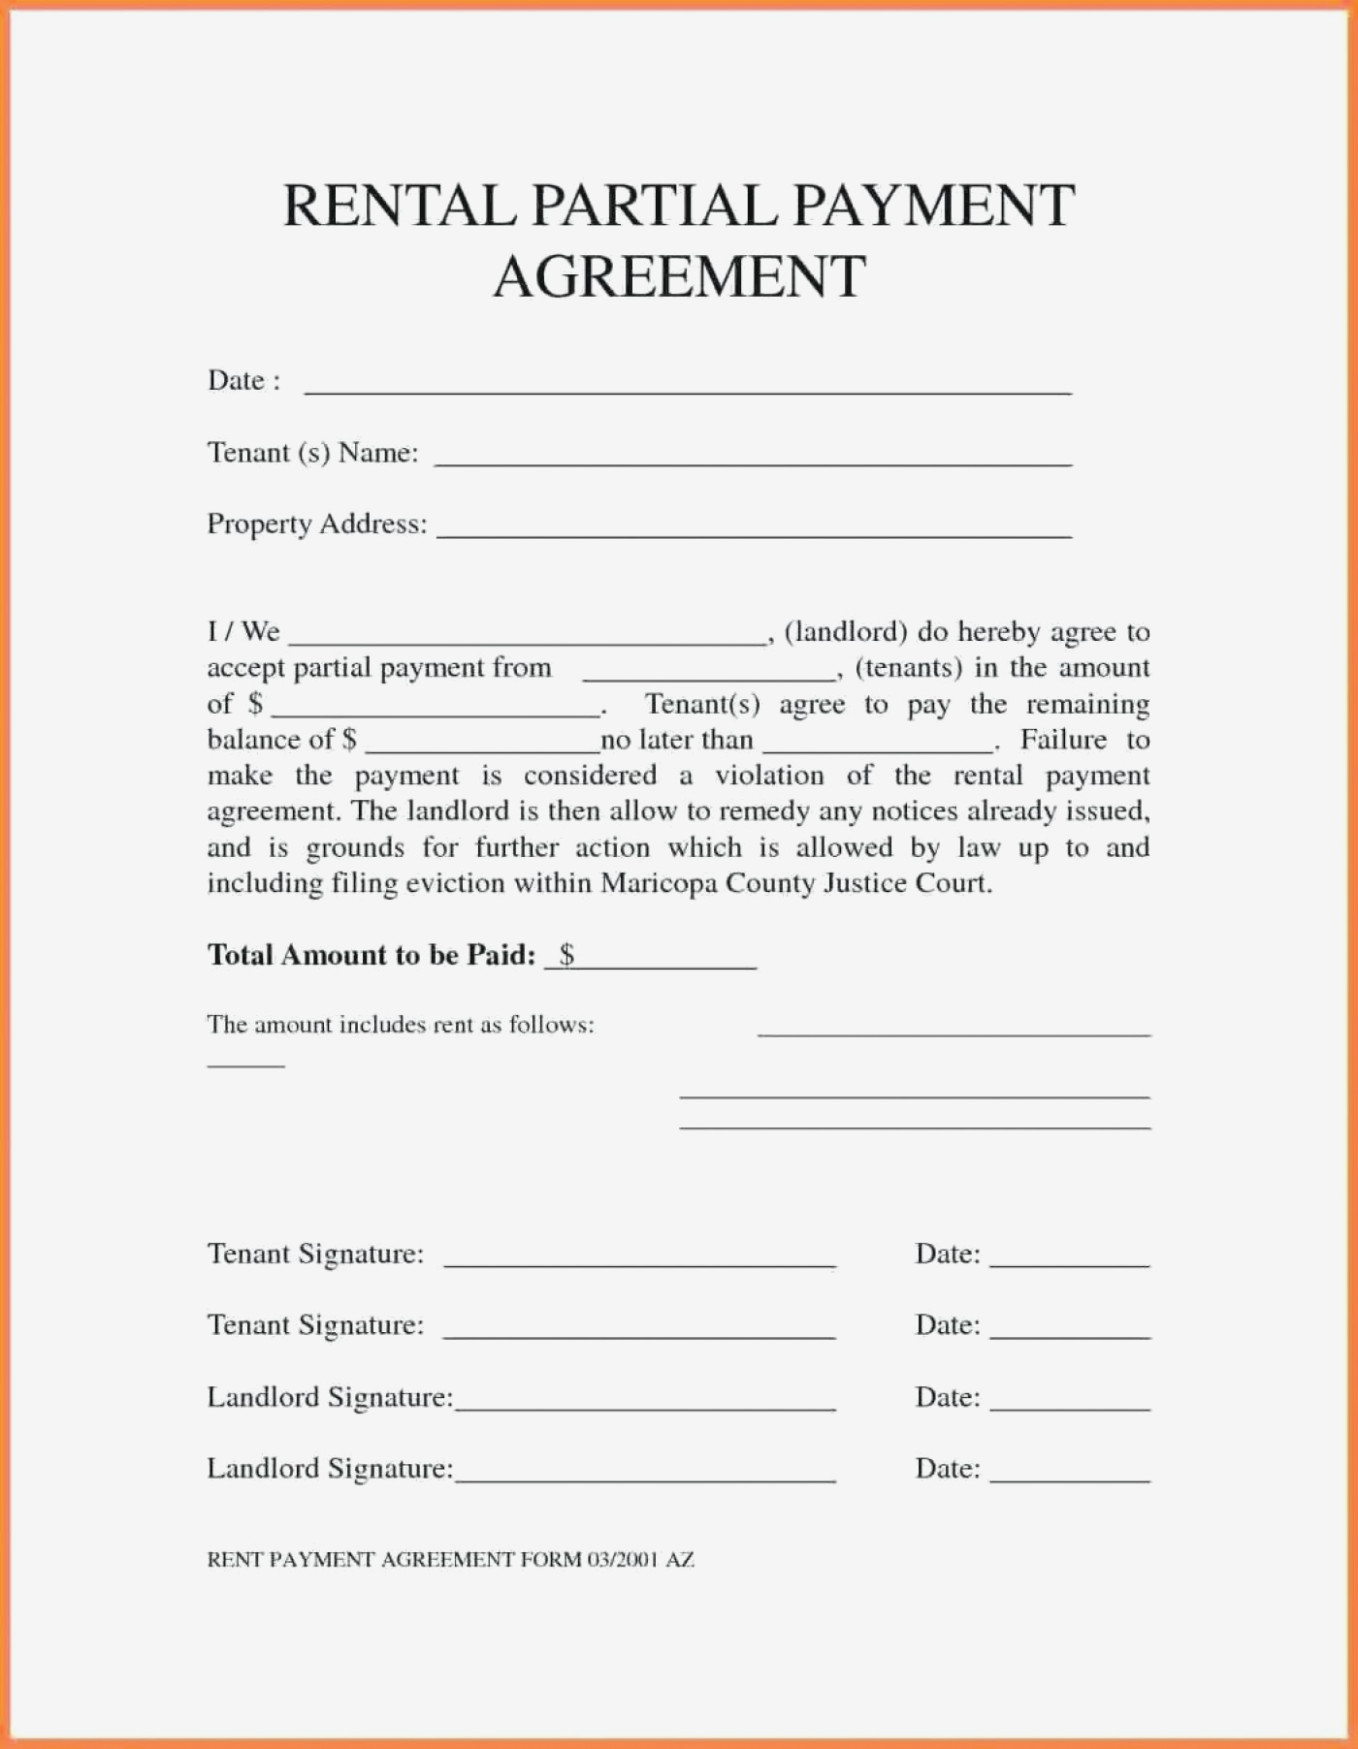 Form Templates Free Blank Legal Forms Spreadsheet Marvelous - Free Legal Forms Online Printable